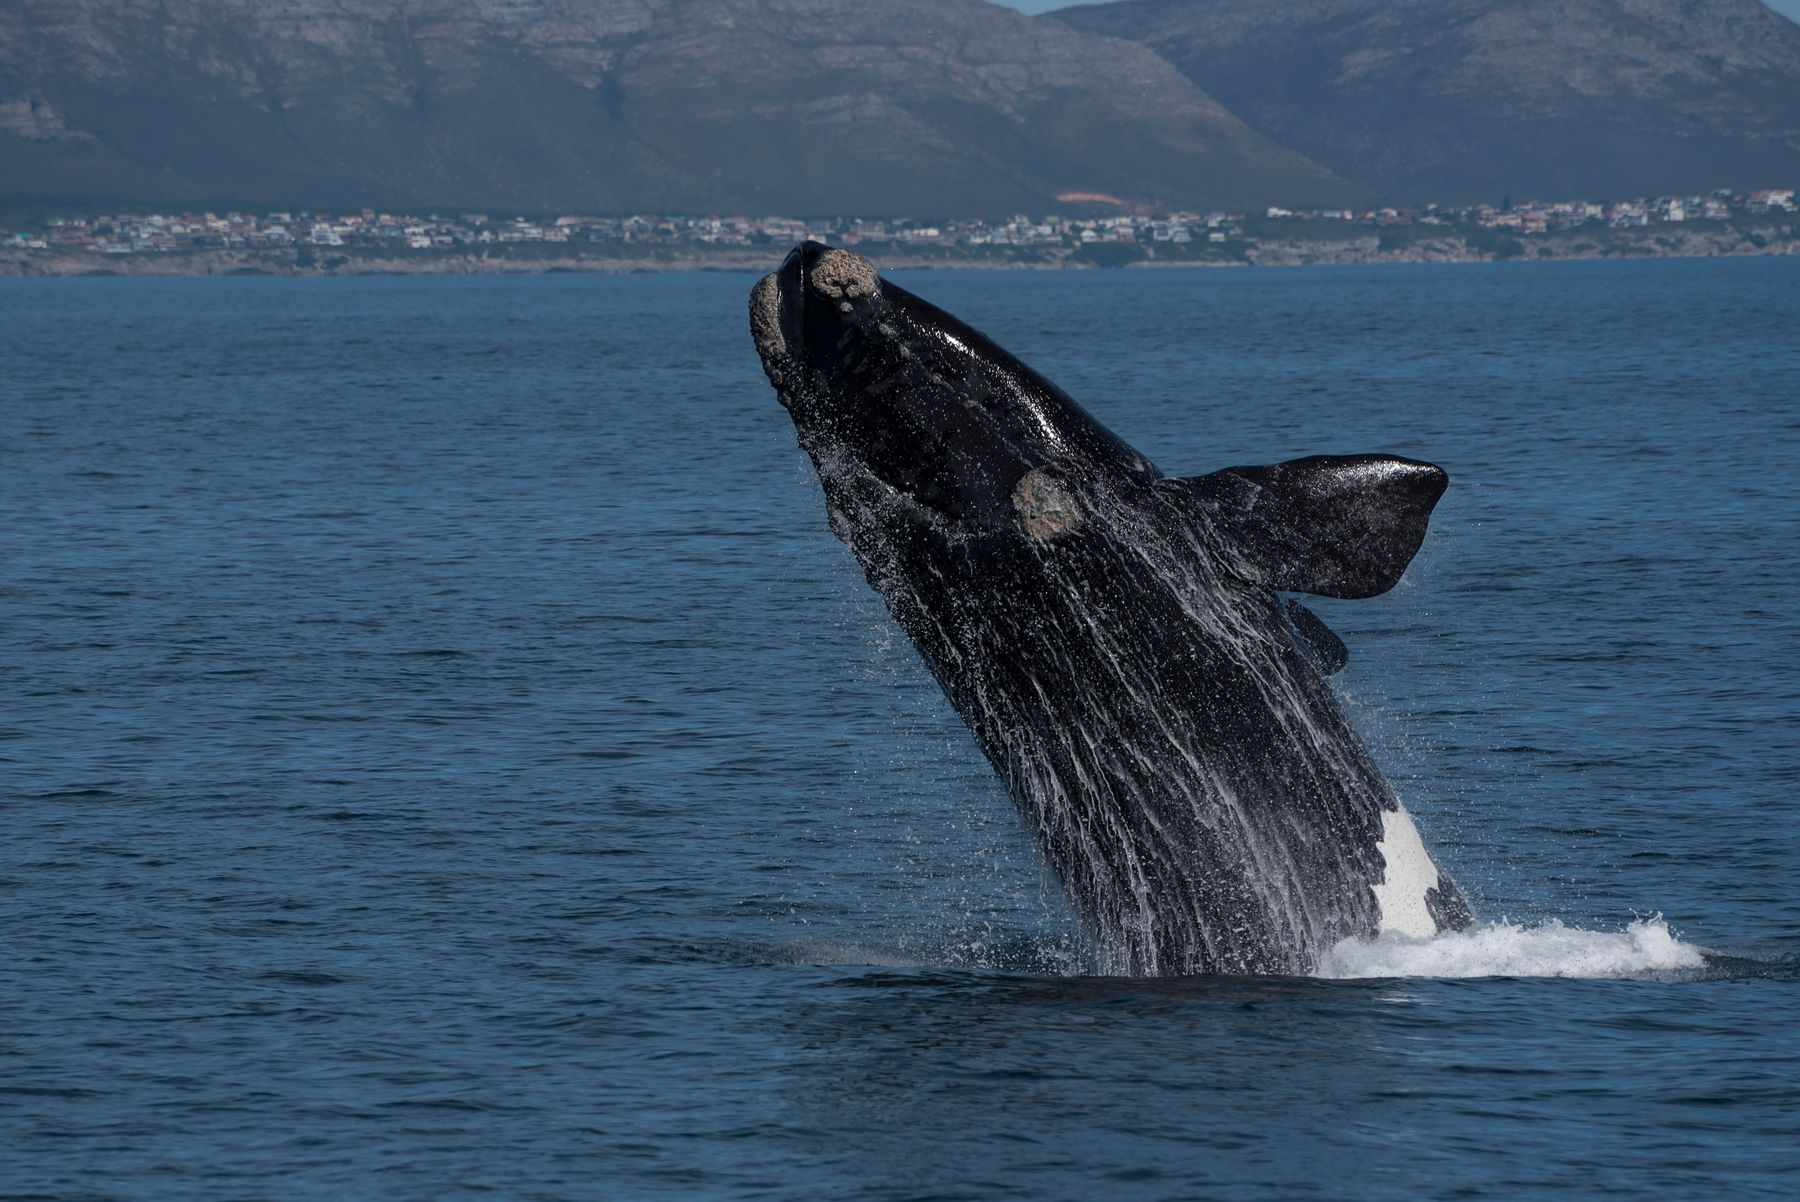 Whale breaching in Hermanus, one of the towns on South Africa's garden route